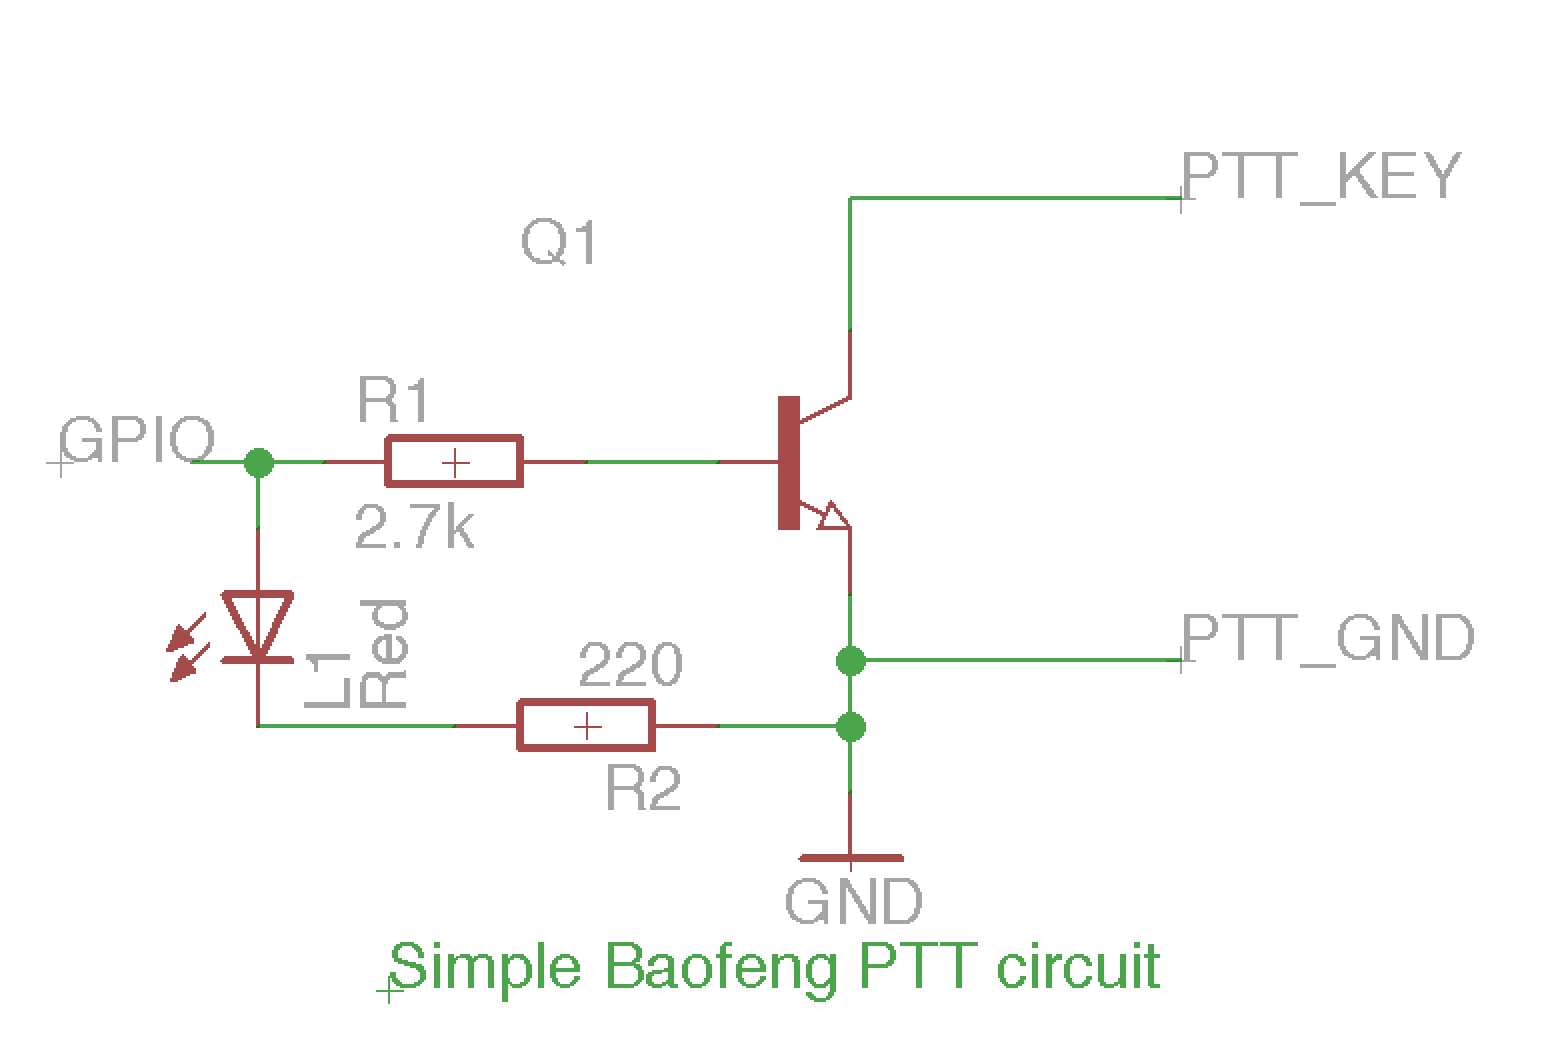 Circuit Schema Diagram Baofeng Headset Wiring Libraries Kenwood Radio Hardware Aprs Box Documentationthe Schematics Below Show One Very Simple Way Of Connecting A